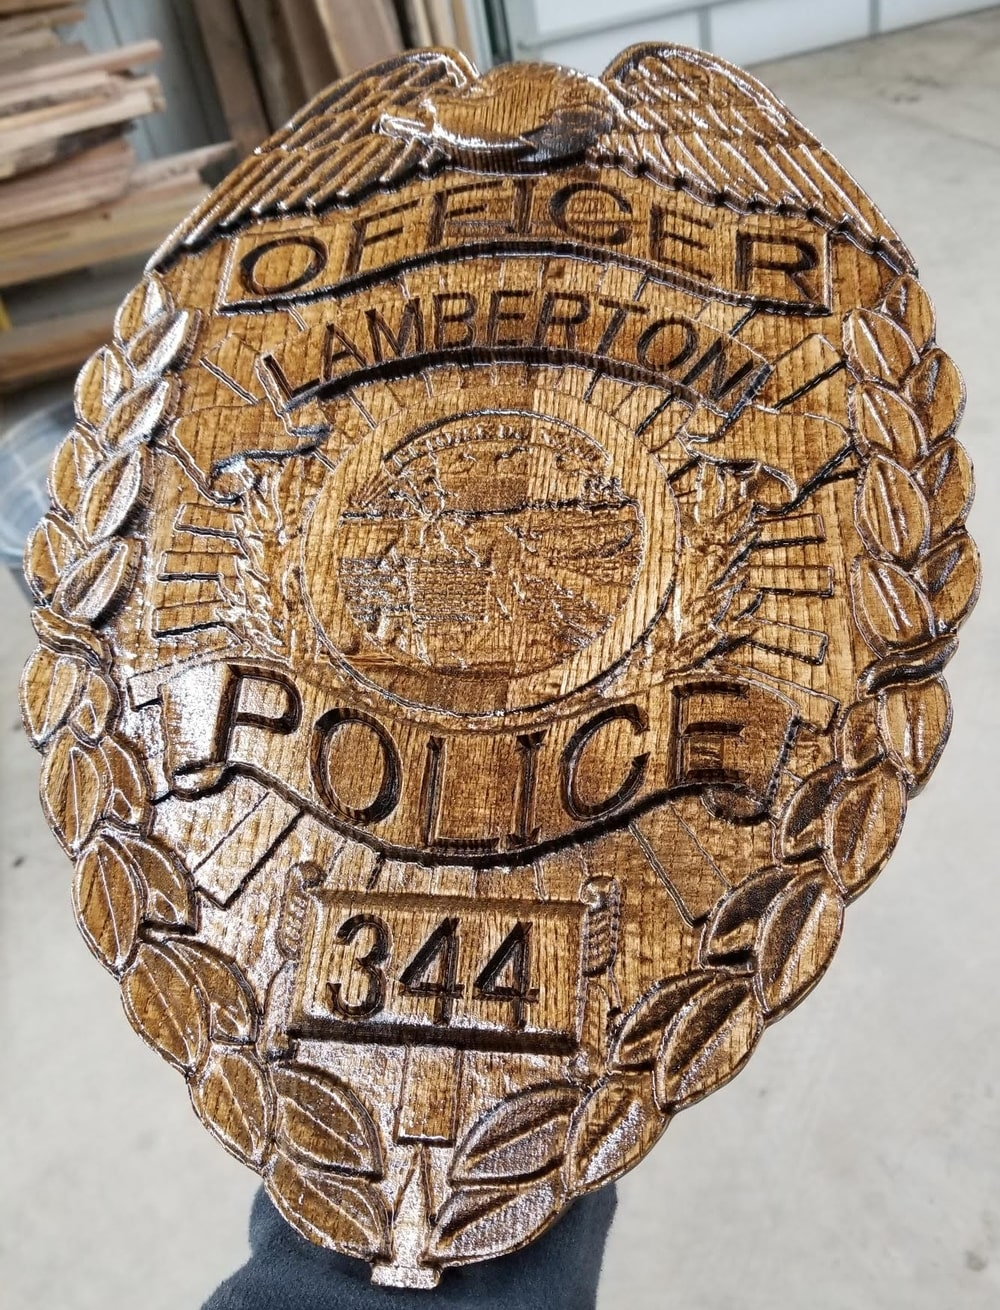 police badge sign - Lamberton Police Department - Colby Davis and Rob Davis - Hinterland Art Crawl